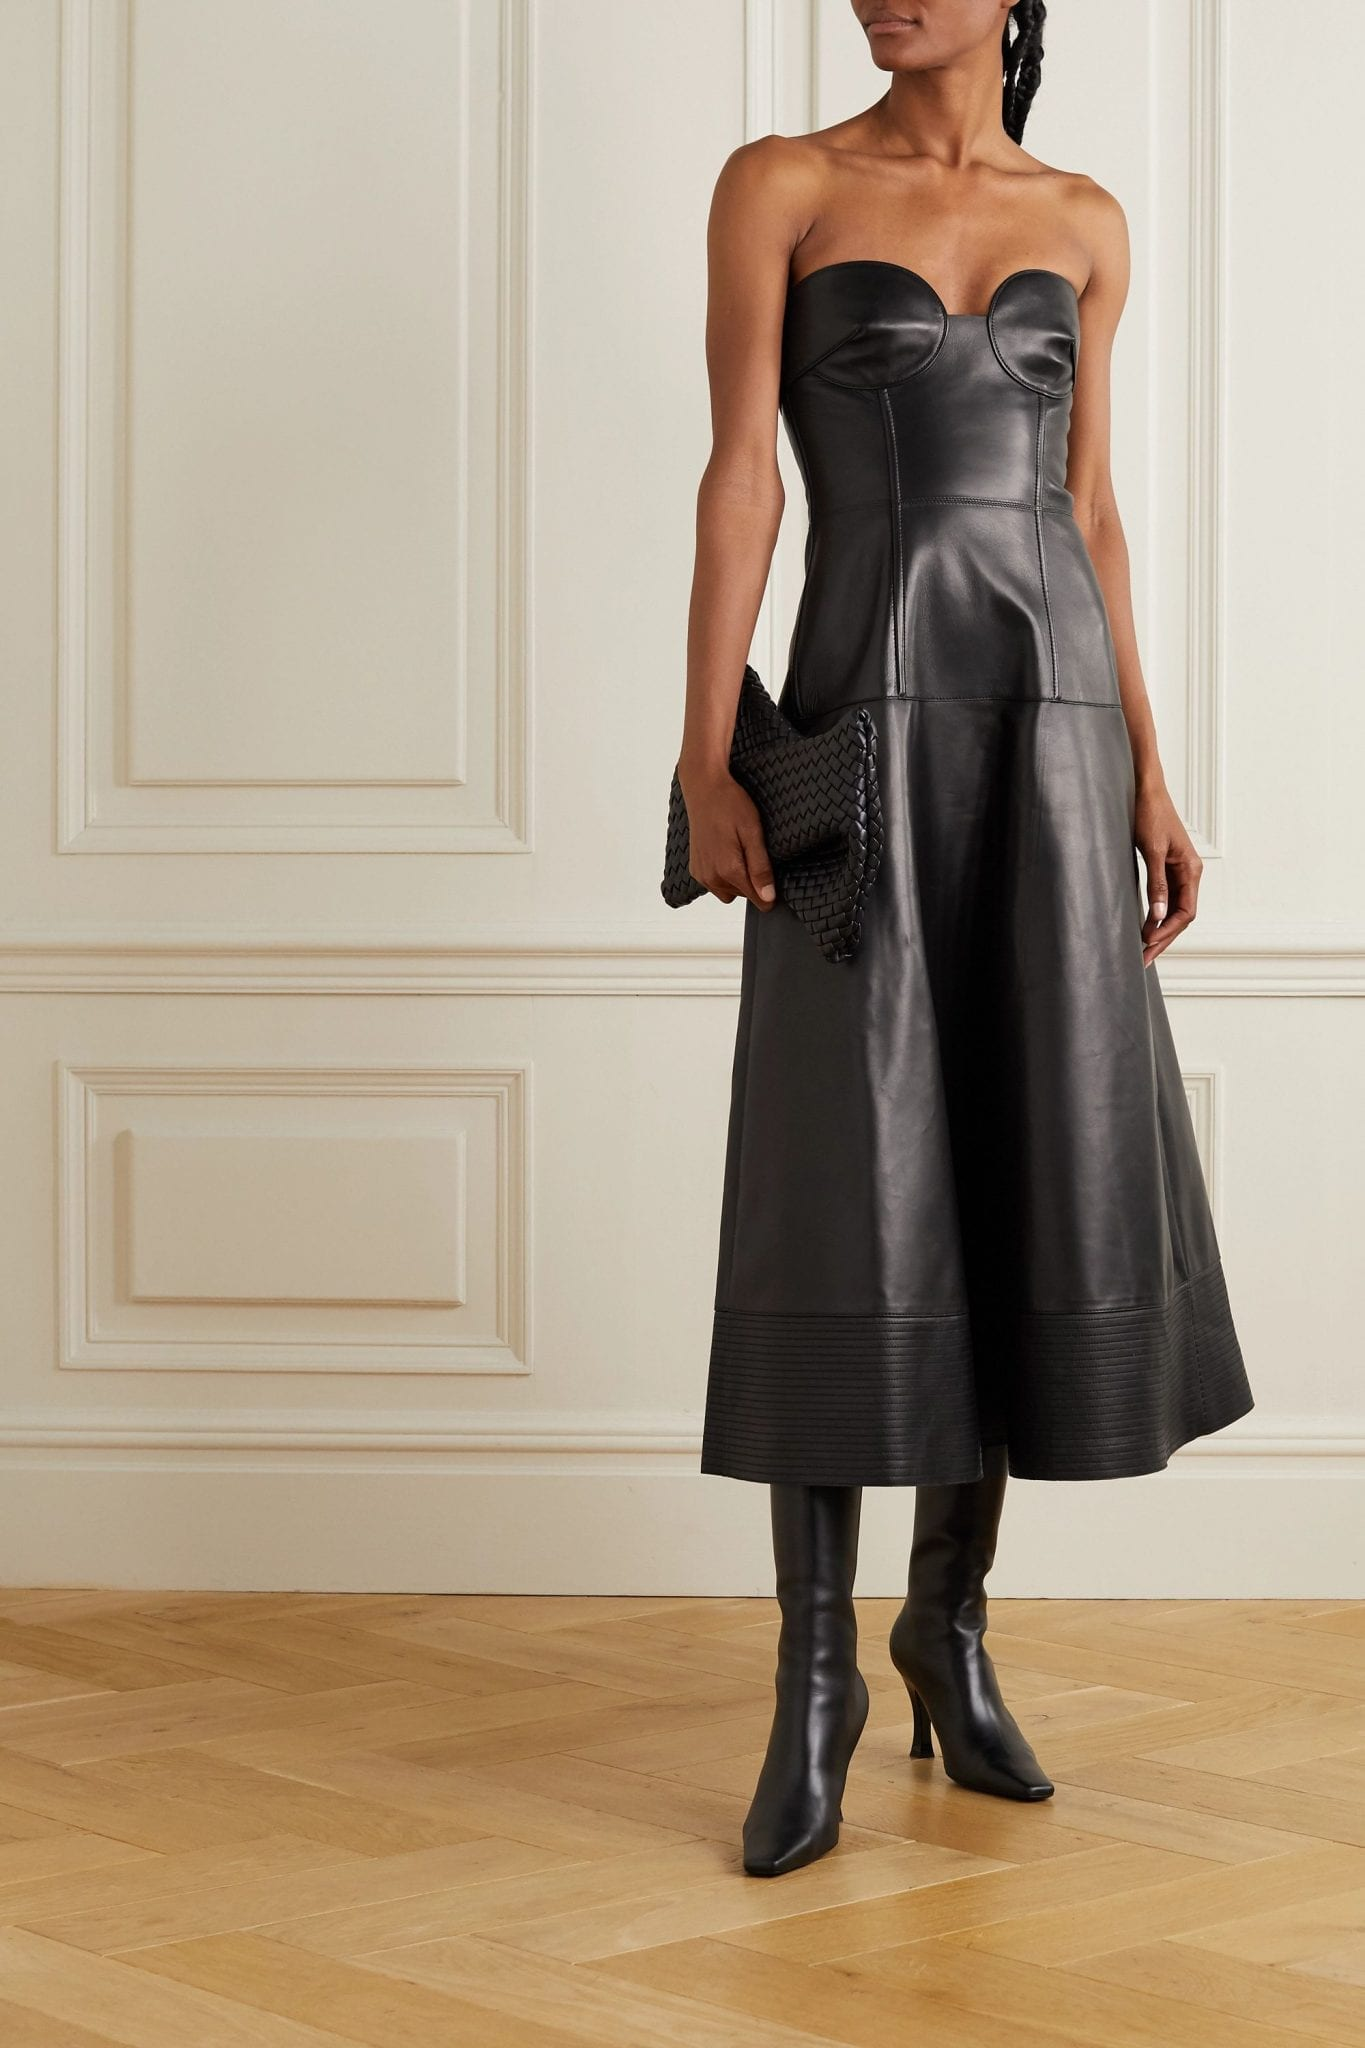 VALENTINO Strapless Leather Midi Dress